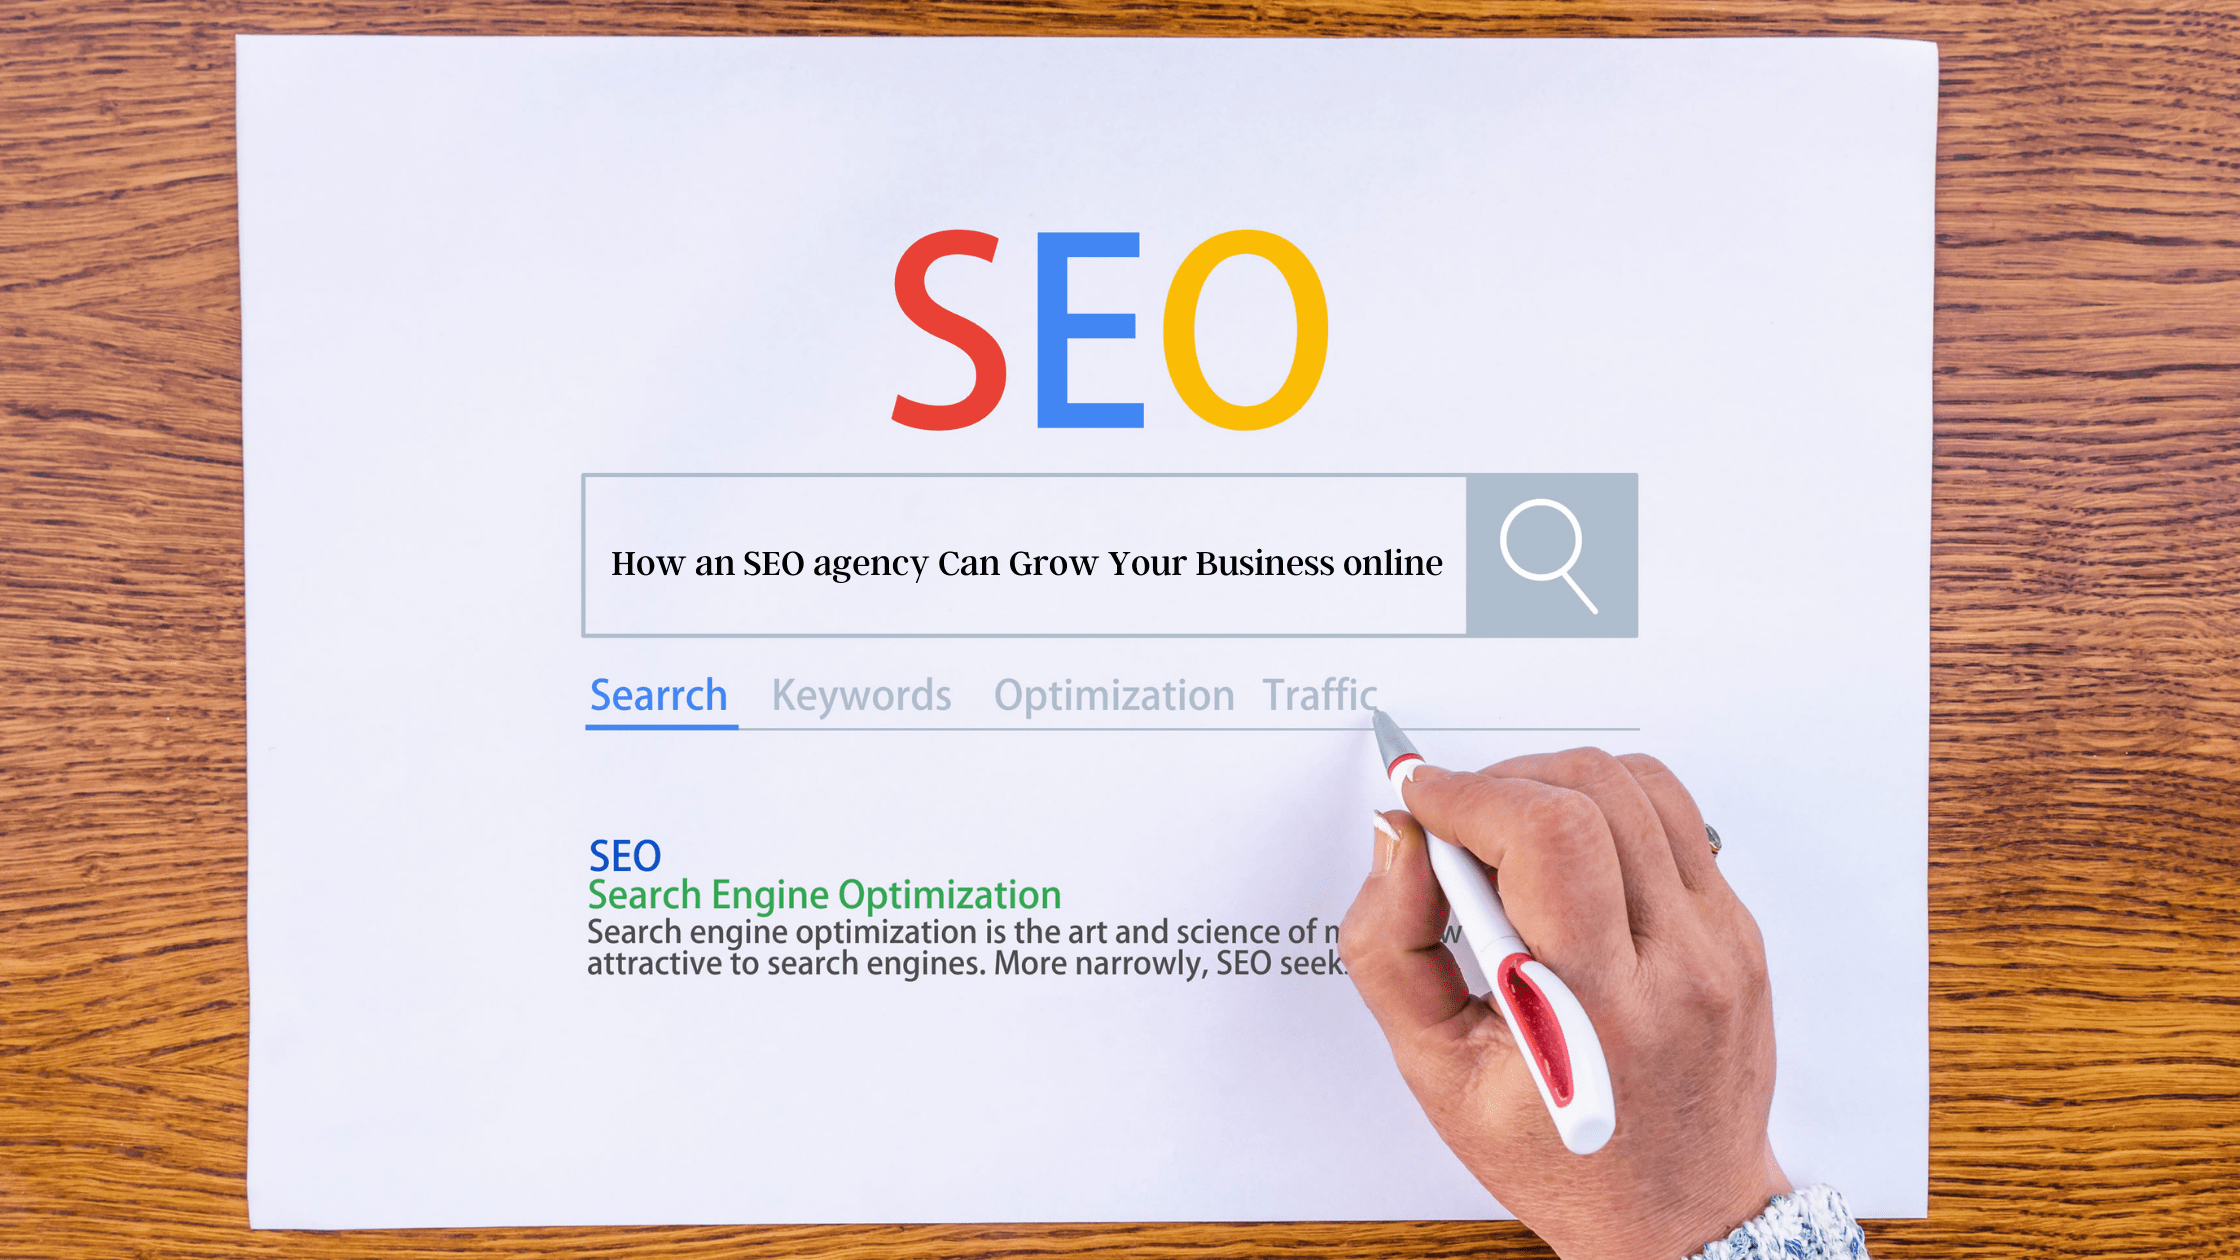 How an SEO agenccy Can Grow Your Business online(1)